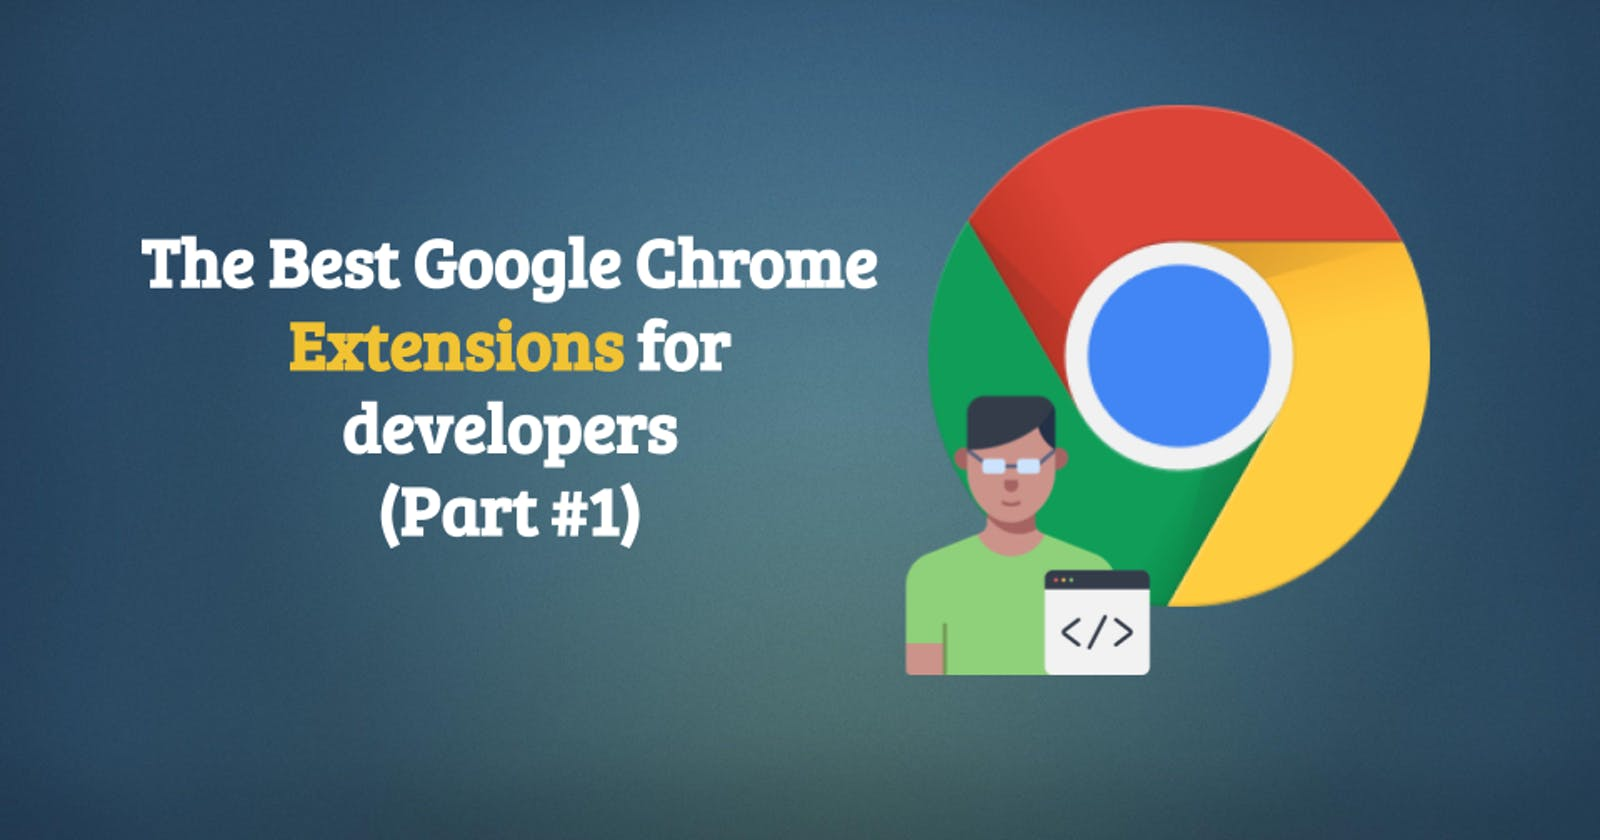 The Best Google Chrome Extensions for developers (Part #1)